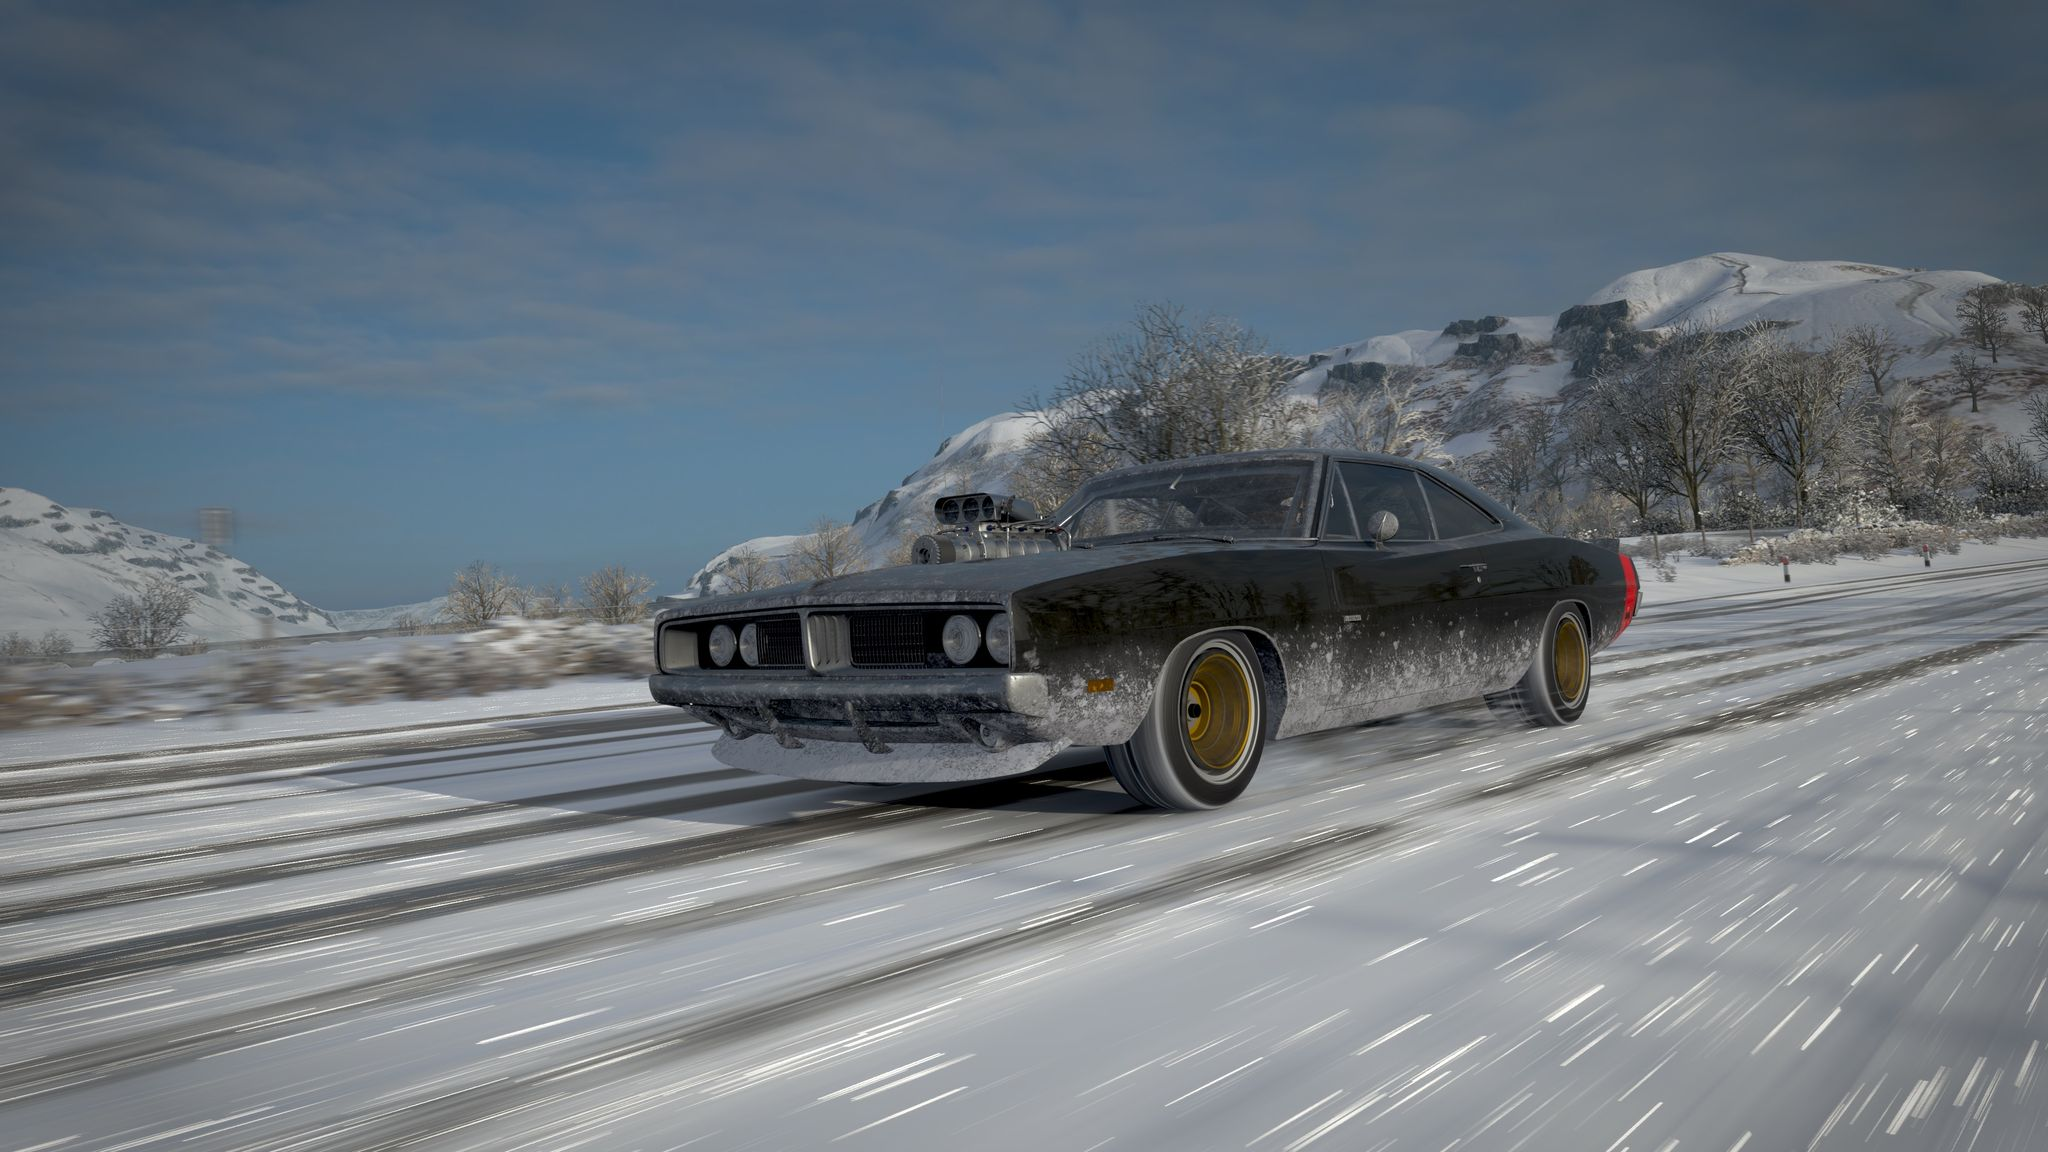 A screenshot from Forza Horizon 4 of a black American muscle car with the engine poking through the bonnet, driving down a snowy road.